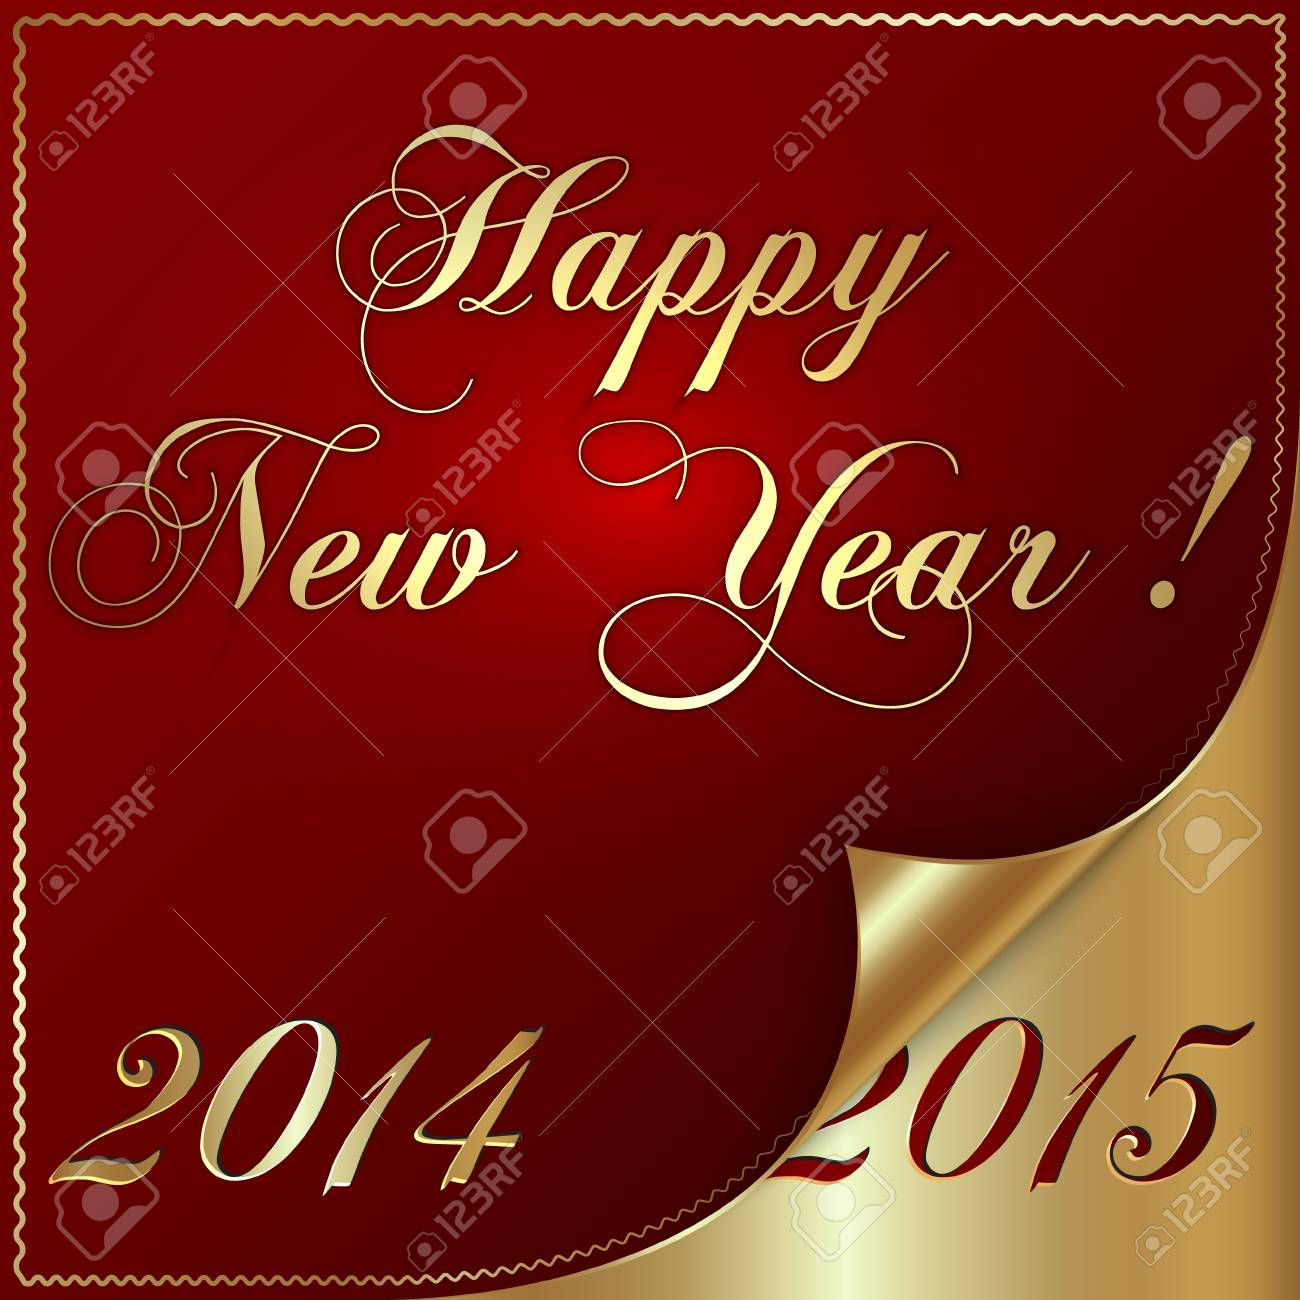 Illustration Of 2015 New Year Greeting With Curled Corner Royalty